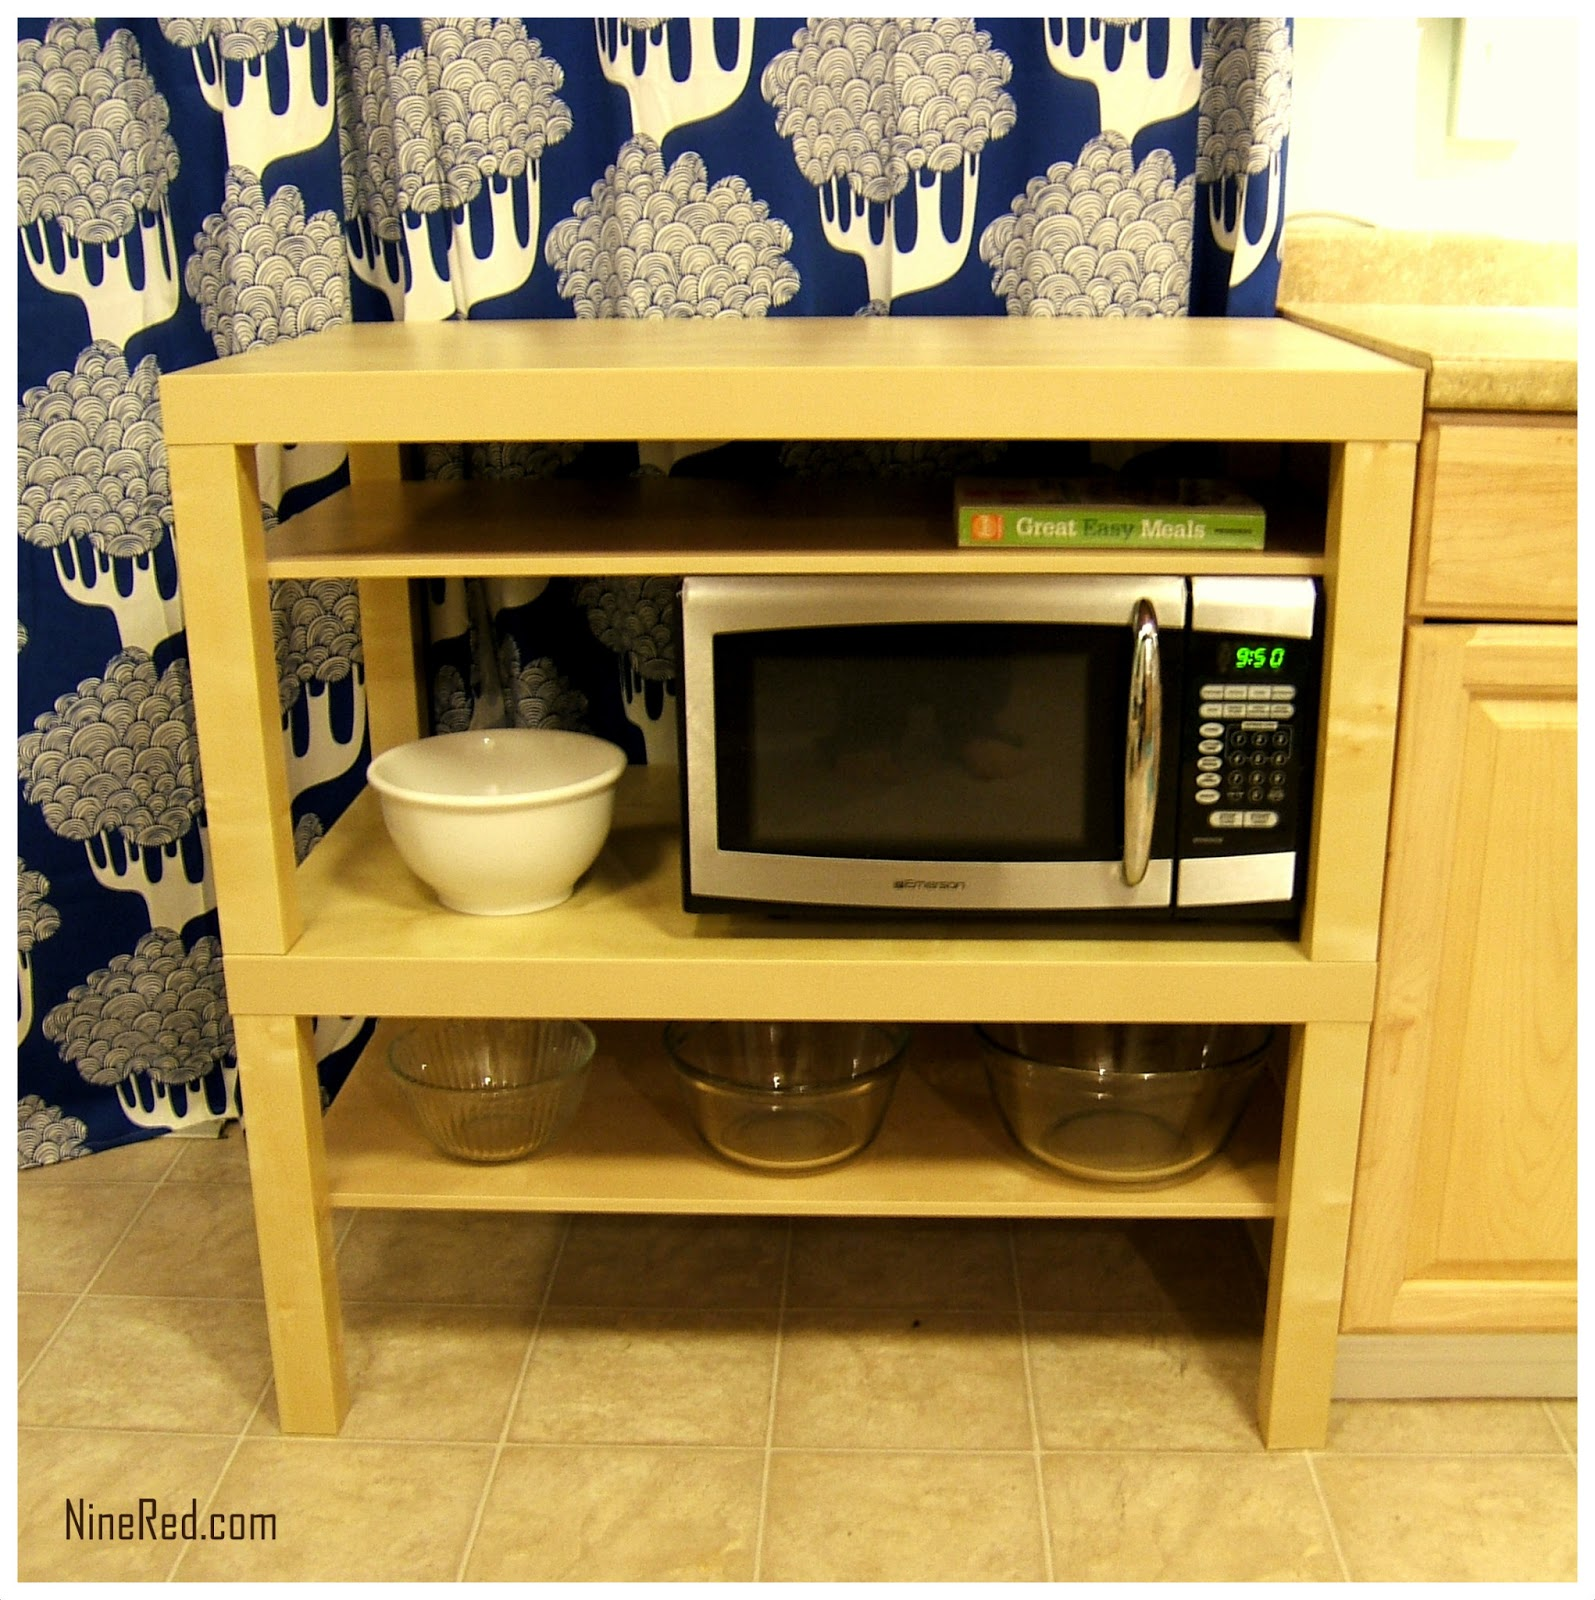 Captivating microwave cart ikea for kitchen with microwave cart with storage ikea